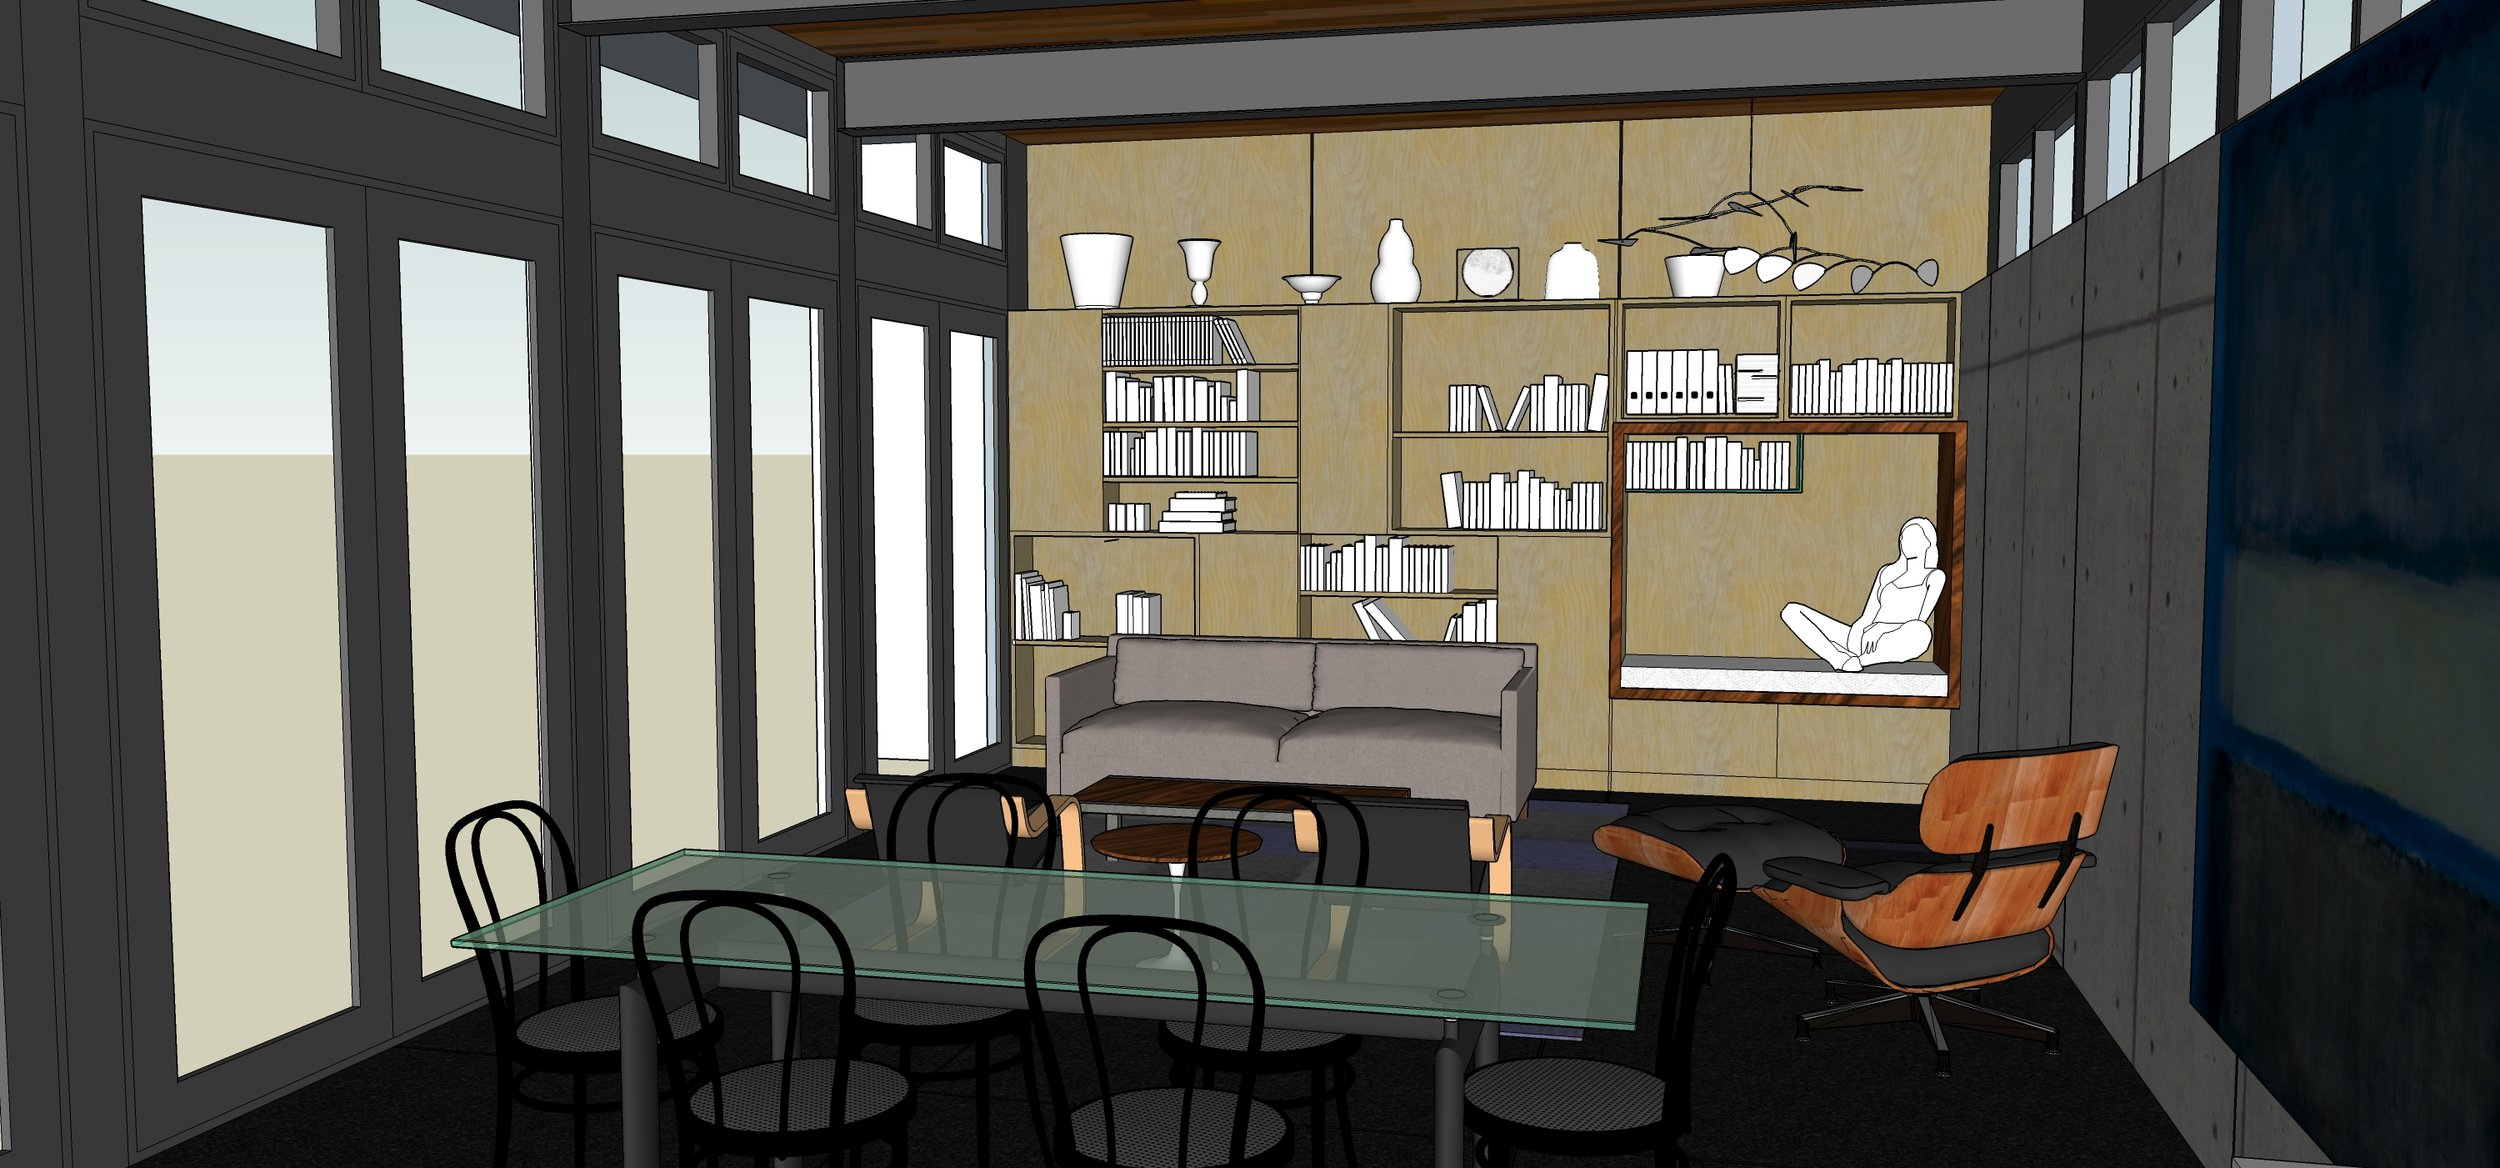 Living and Dining room image, Southeast Portland house, by M. Gerwing Architects, Boulder, Colorado